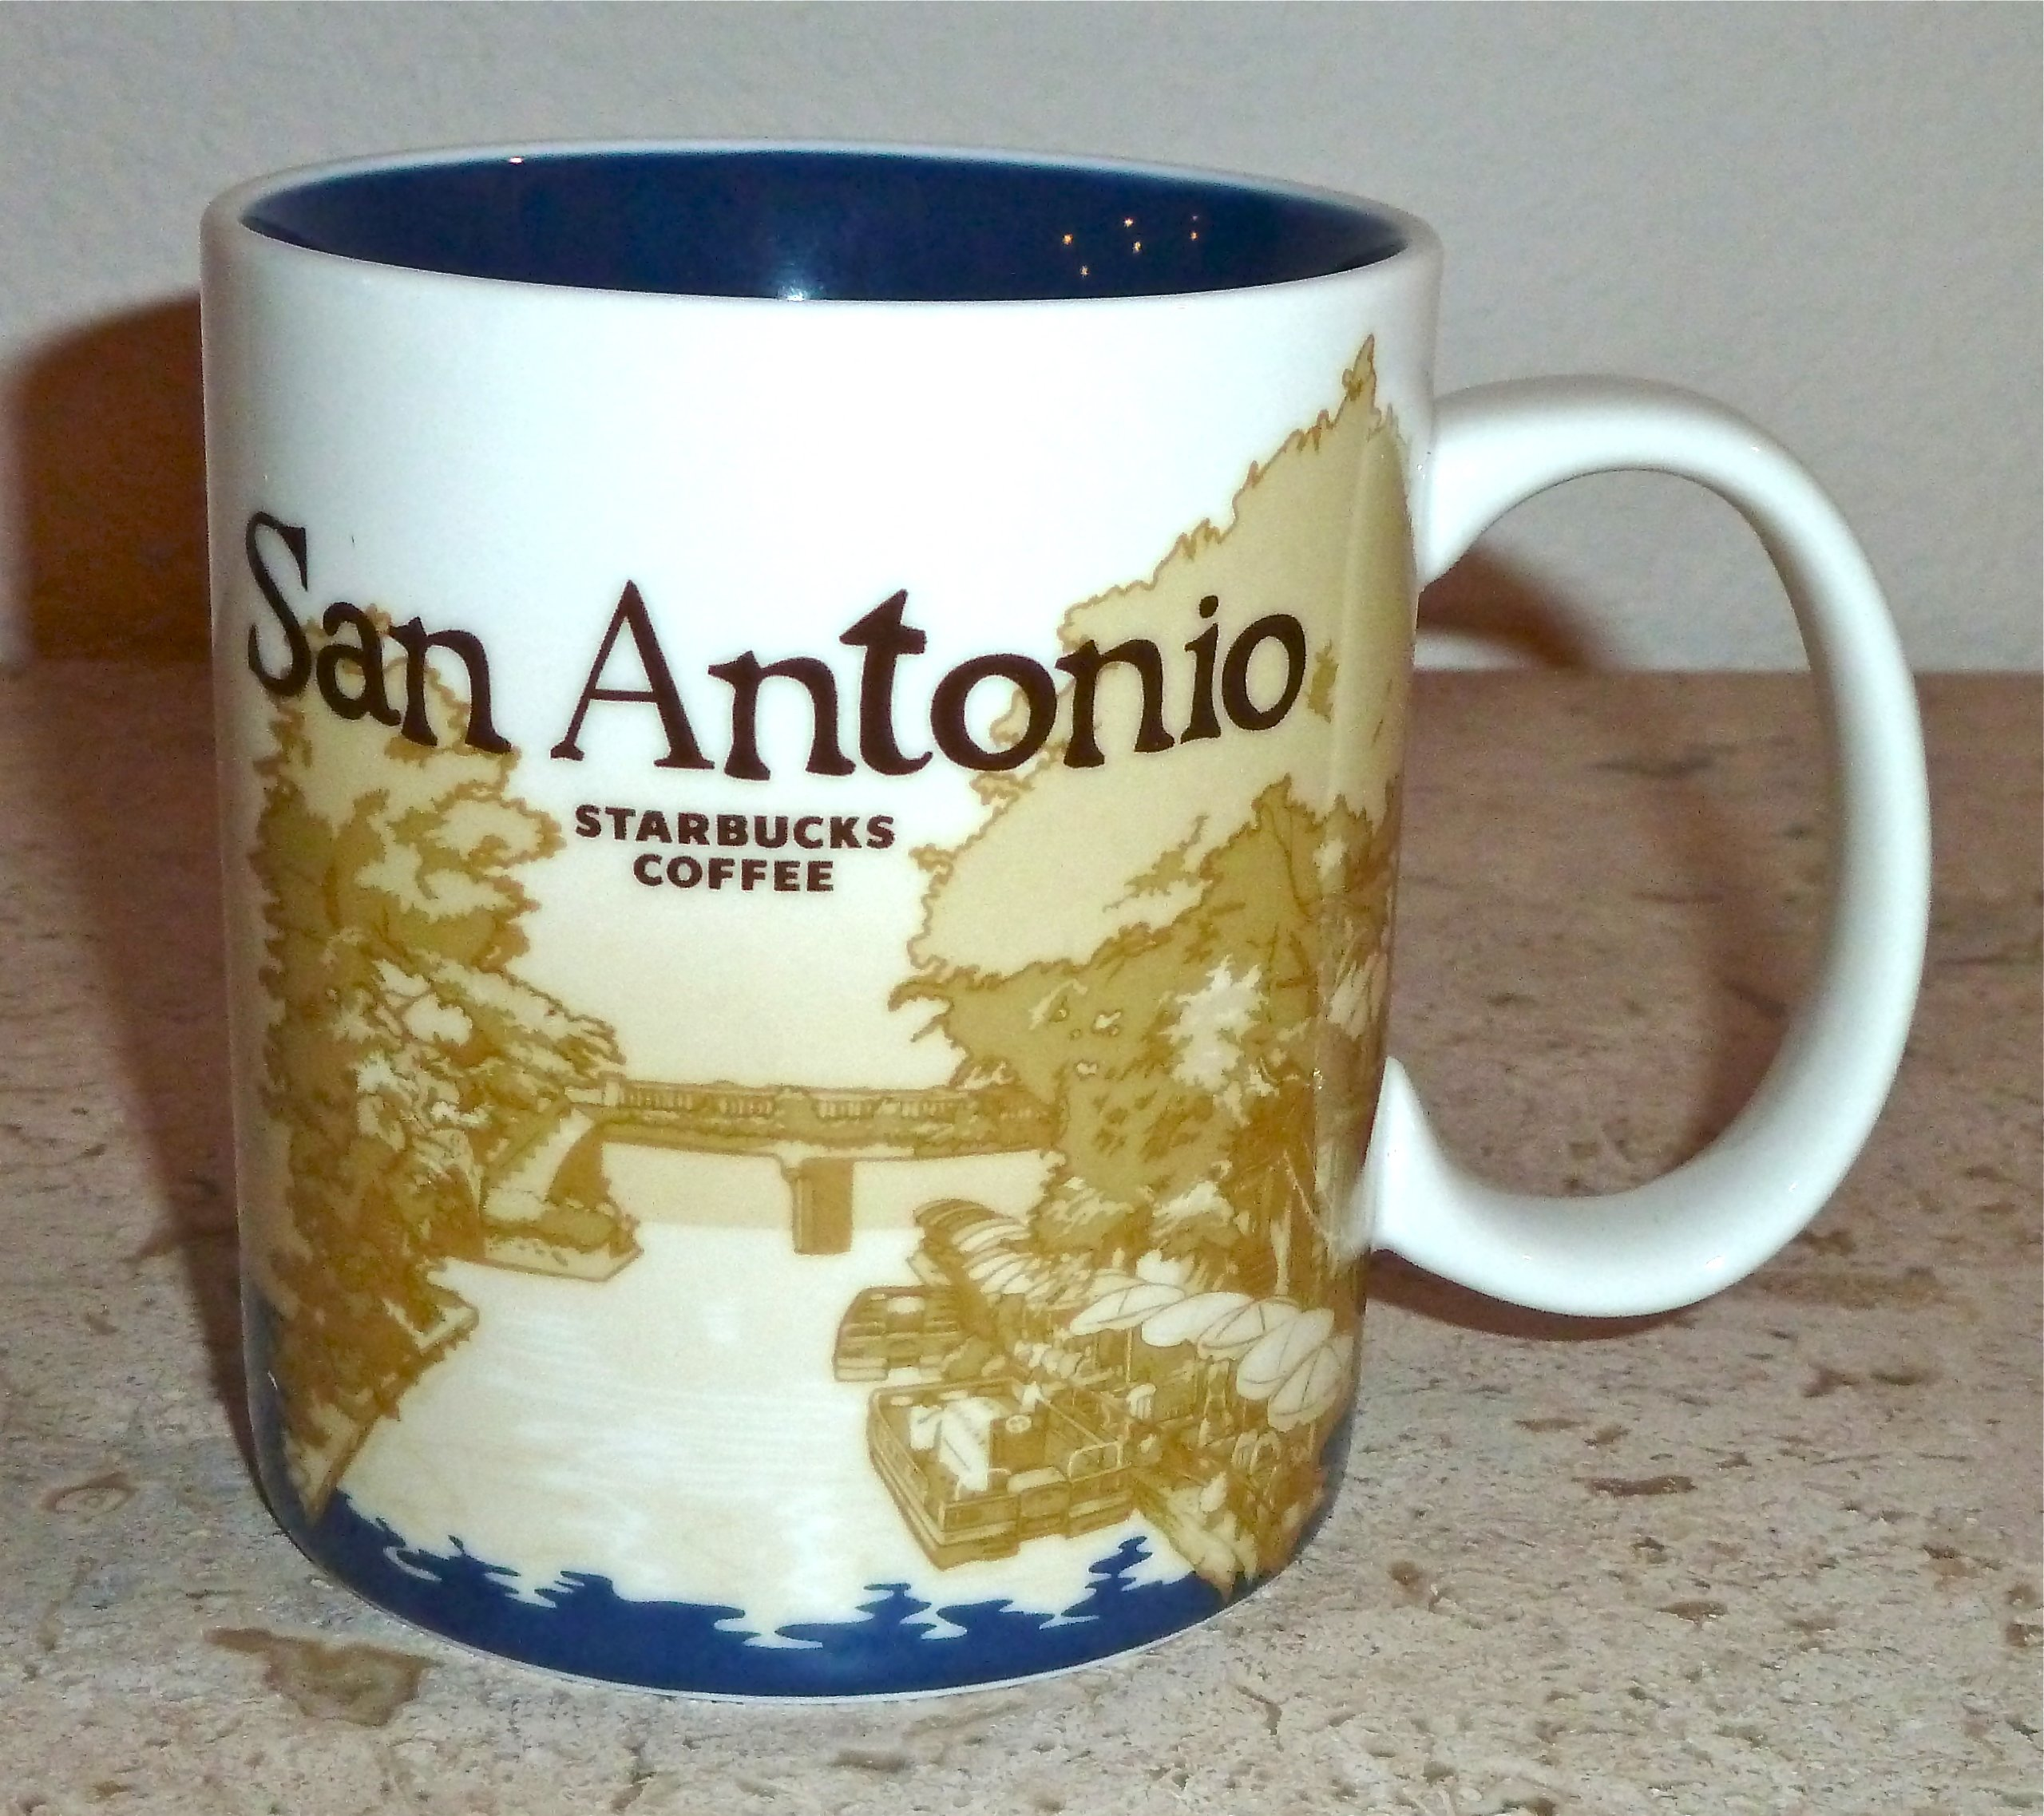 Starbucks 2010 Collector Series San Antonio City Coffee Mug 16 Ounce Size